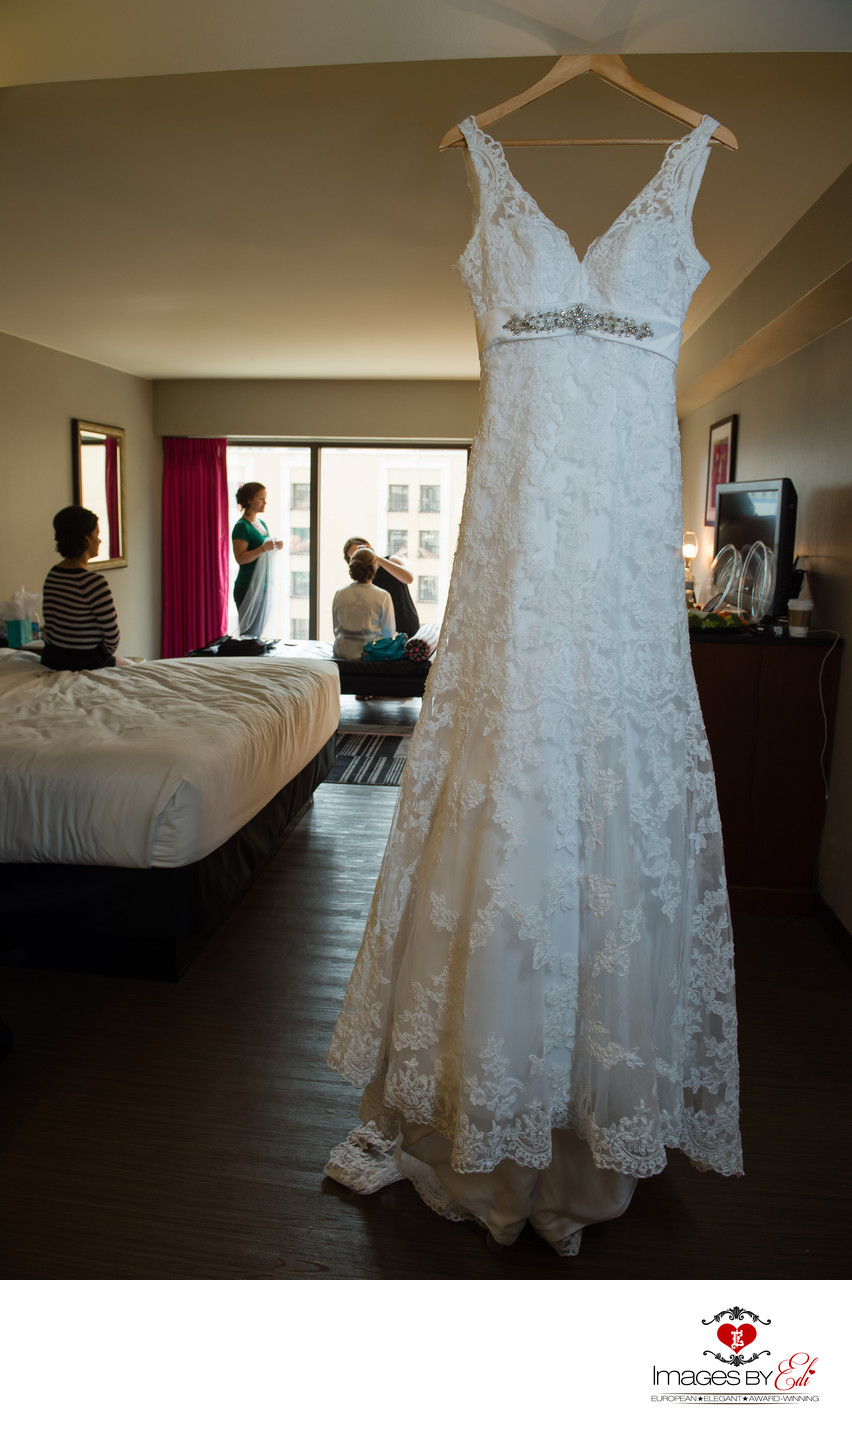 Bride gets ready at Flamingo hotel before Cili Bali Hai wedding